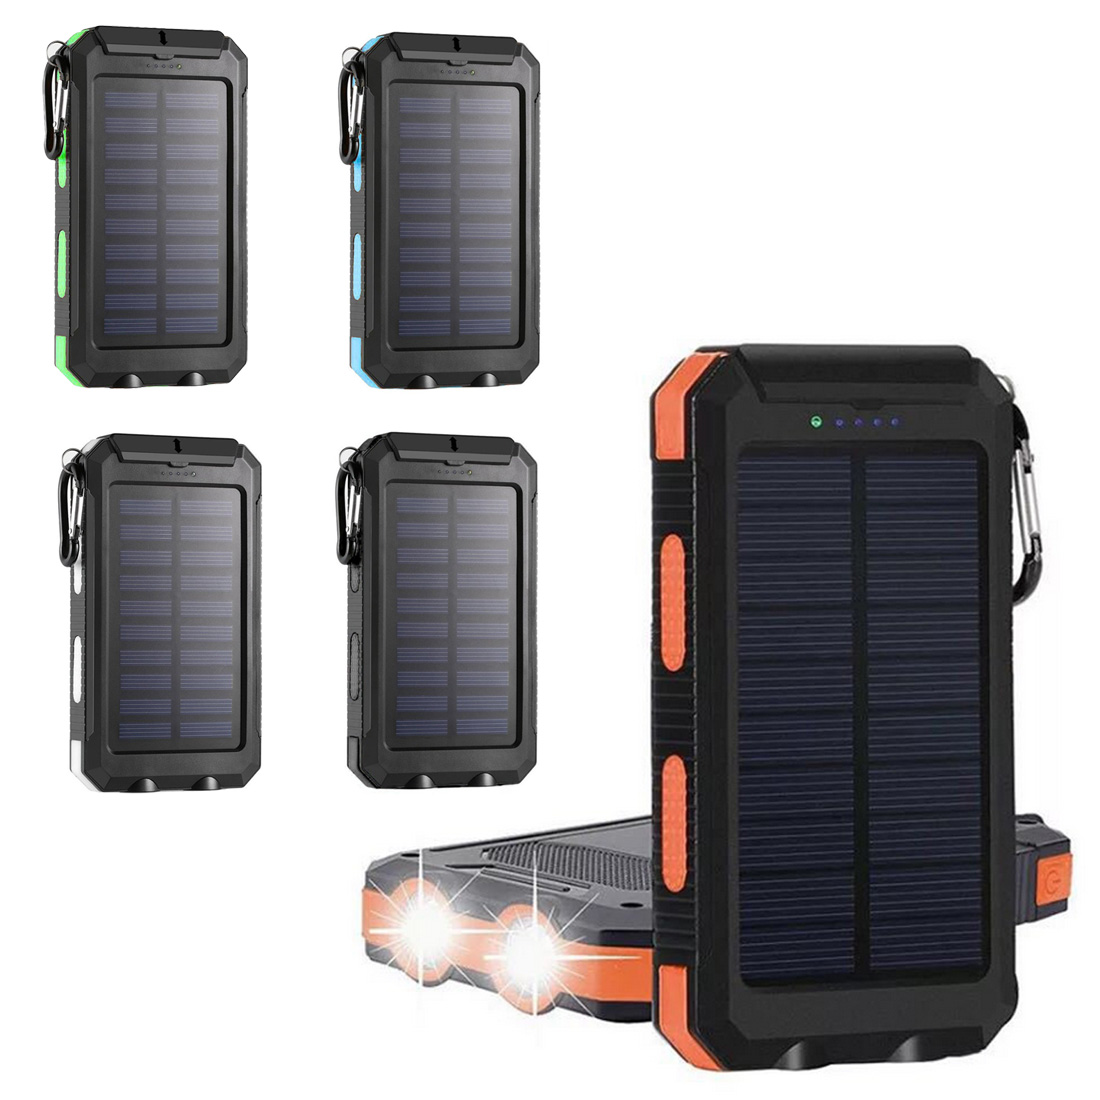 Multifunction Solar Mobile Power Supply Kit No Battery LED Solar Panel Charger Storage Box Outdoor Portable Power Bank Case